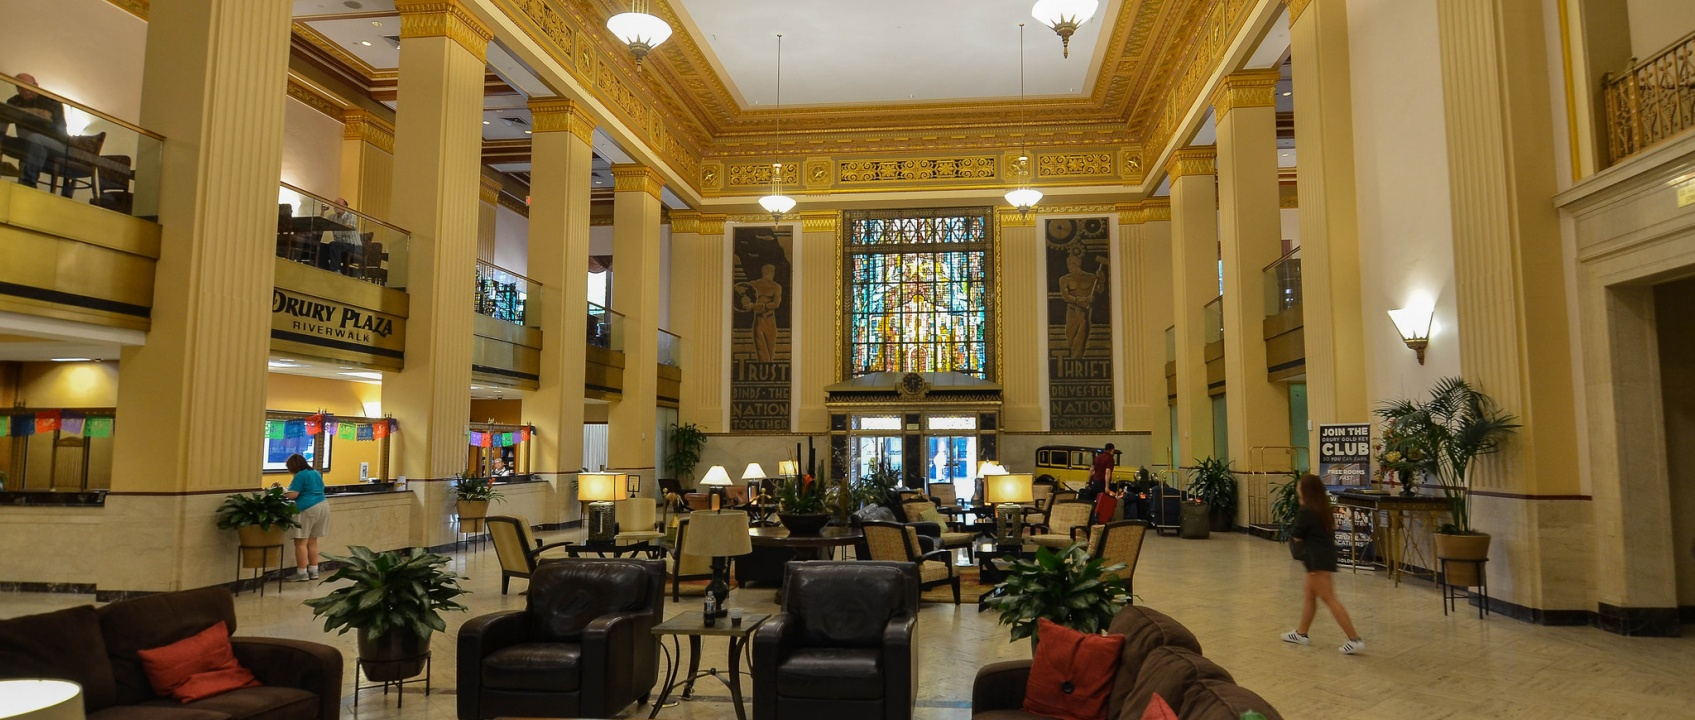 Drury Plaza hotel lobby by Mark Levisay